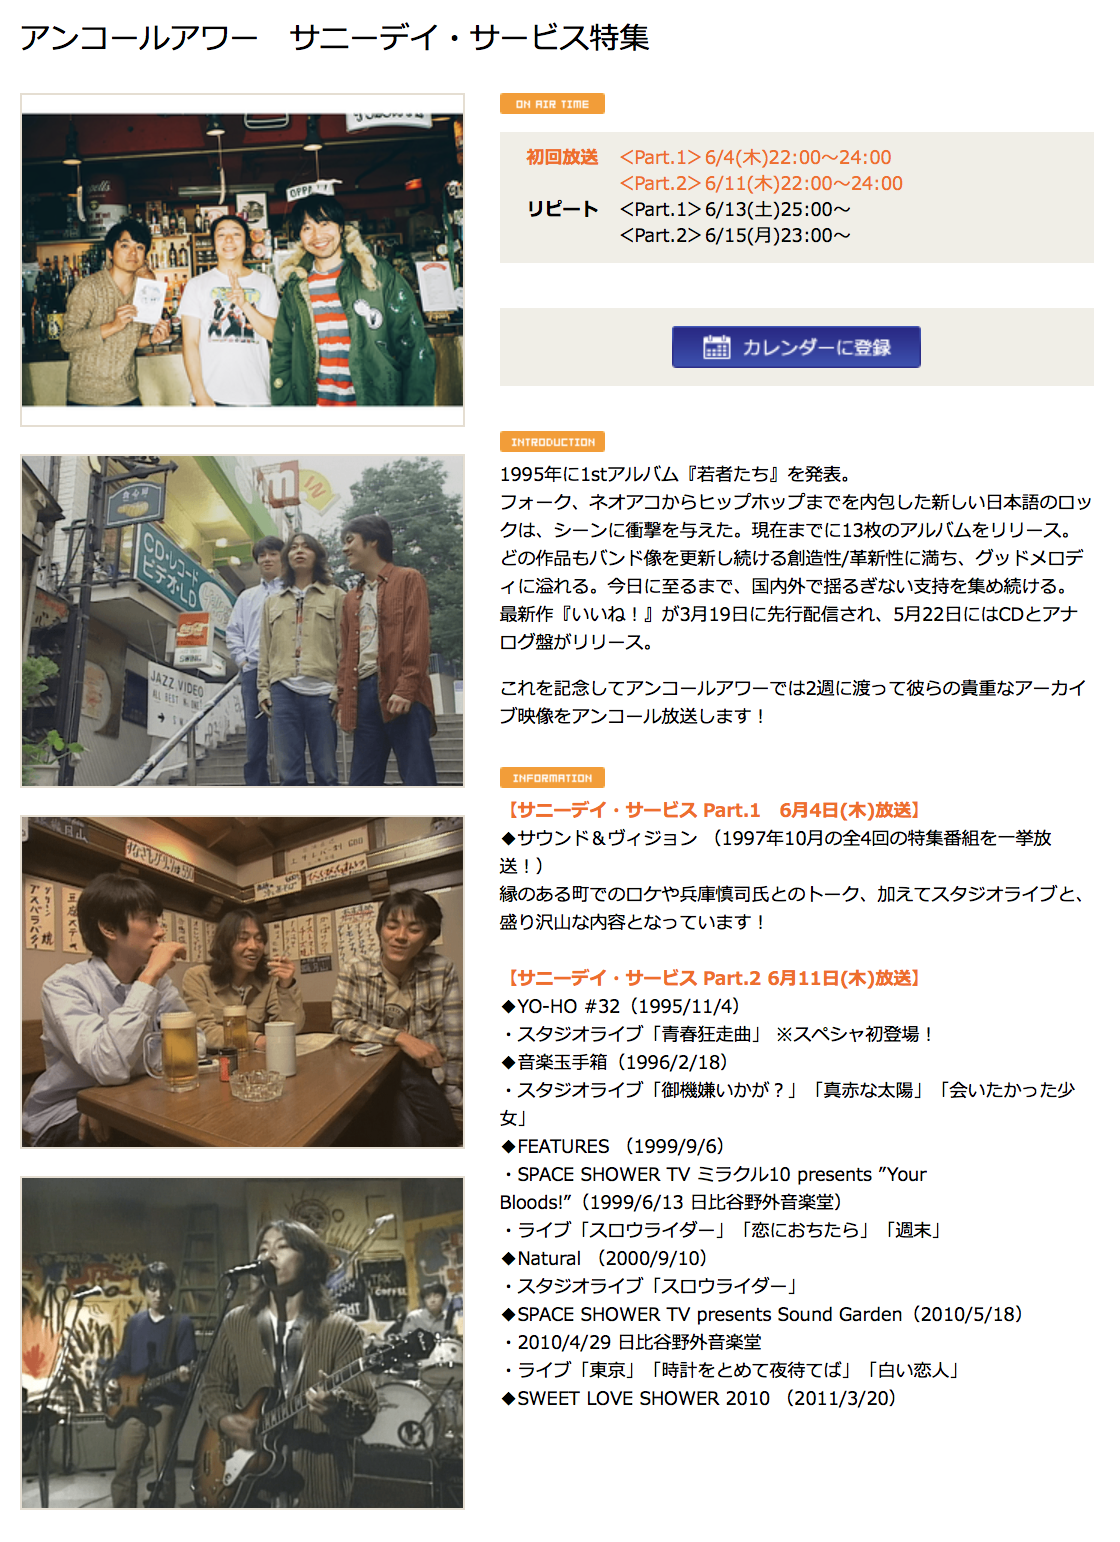 http://rose-records.jp/files/20200603134244.png